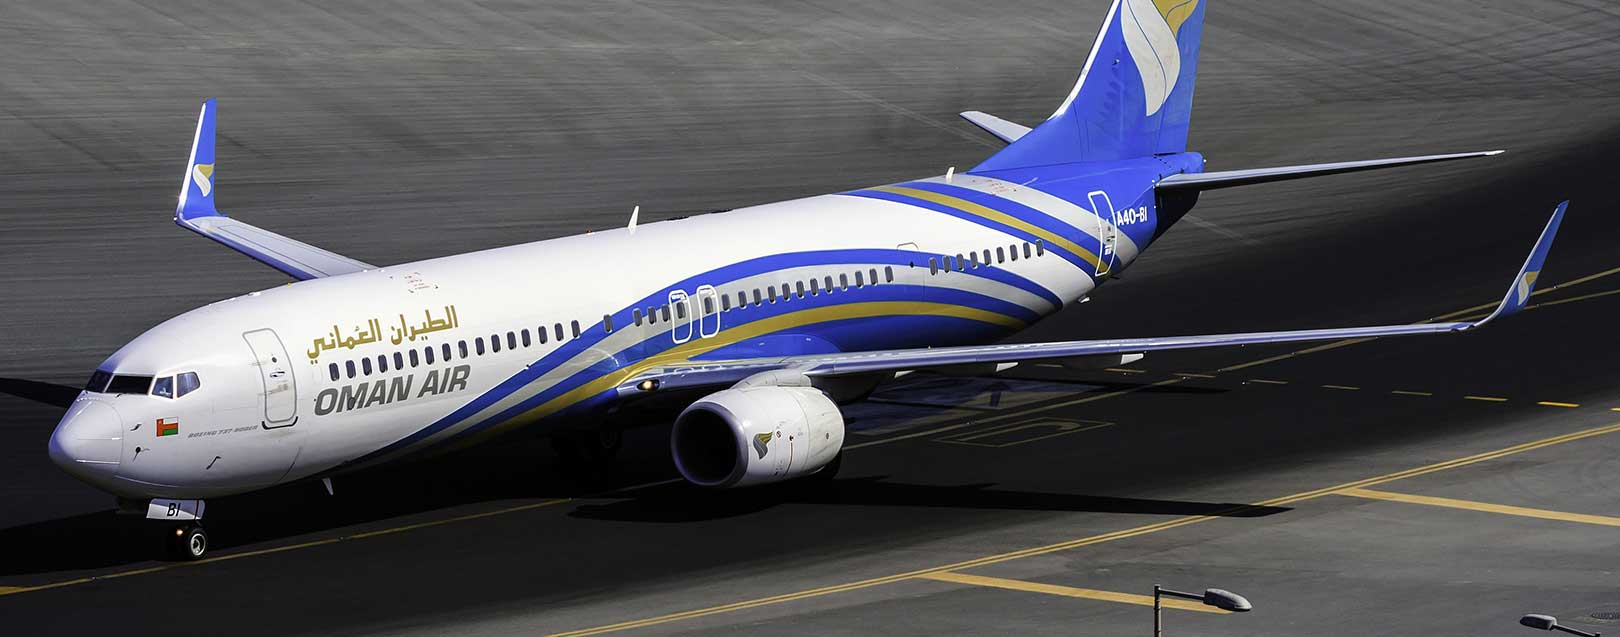 India will consider an open sky agreement for flights within 5,000 km: Oman Air